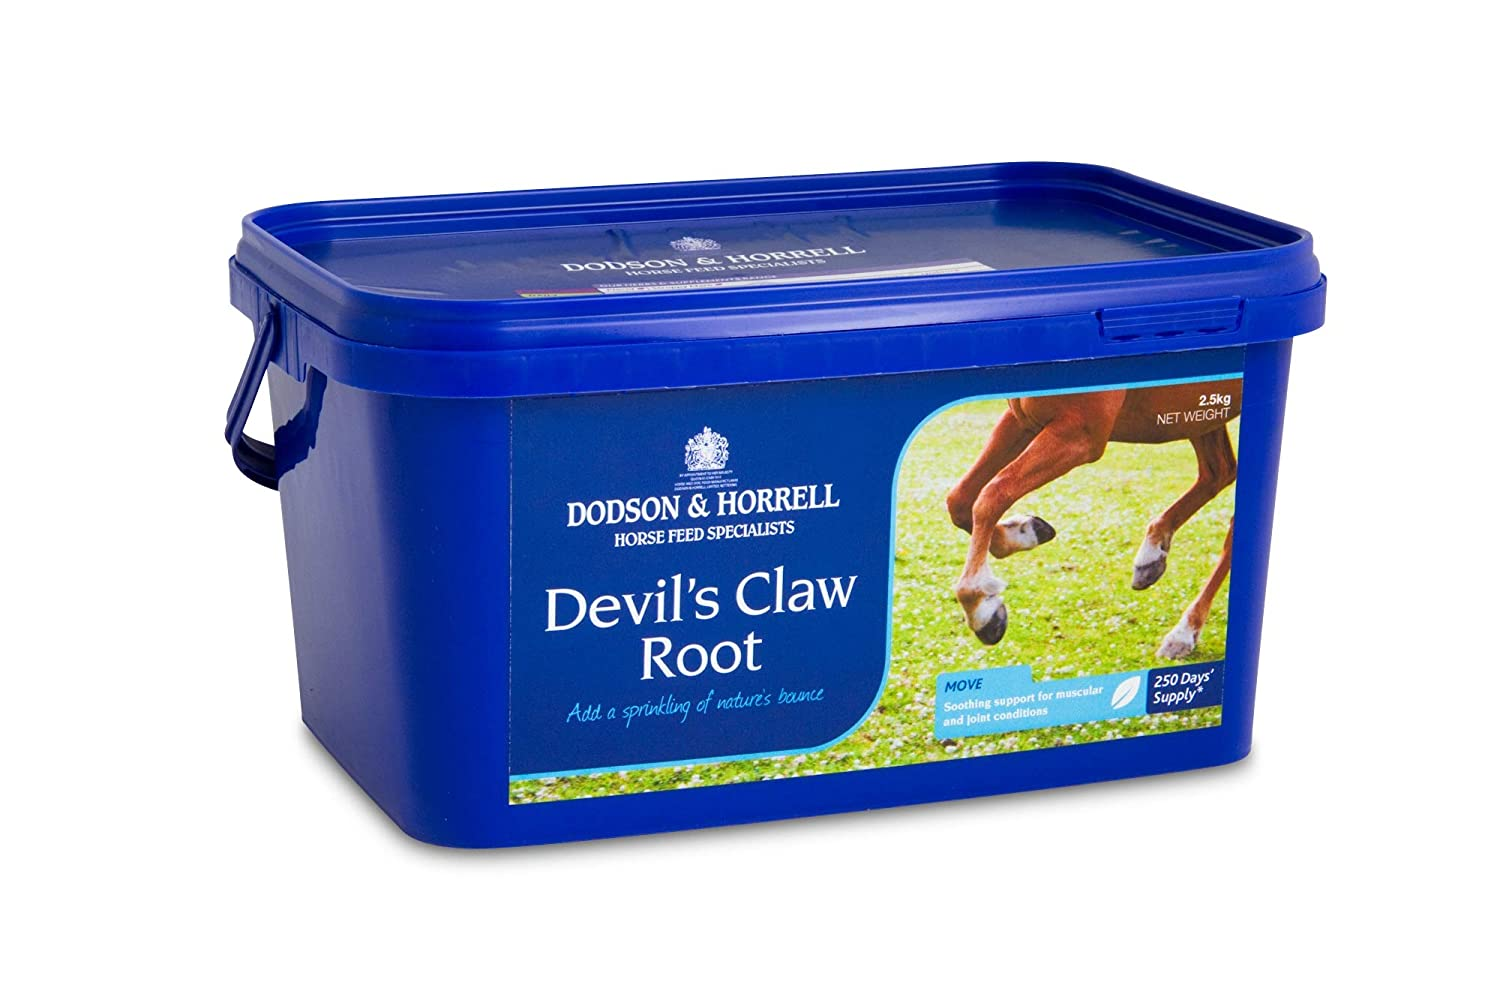 Dodson & horrell Devils Claw, 2.5kg 07DHDC25